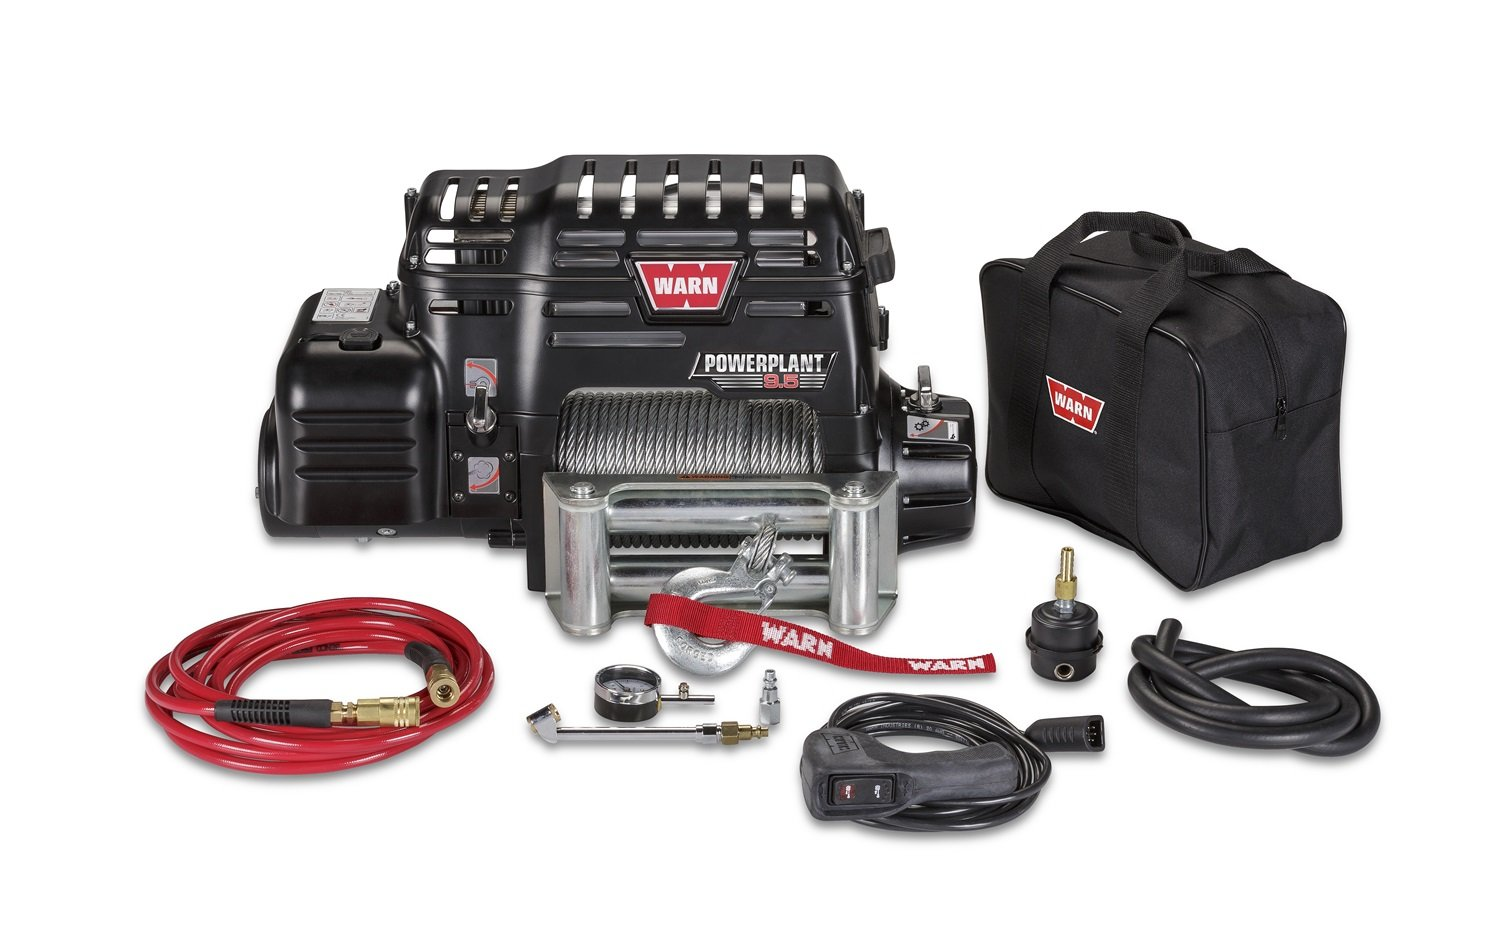 amazon com warn 91800 powerplant 9 5 air compressor and winch amazon com warn 91800 powerplant 9 5 air compressor and winch automotive